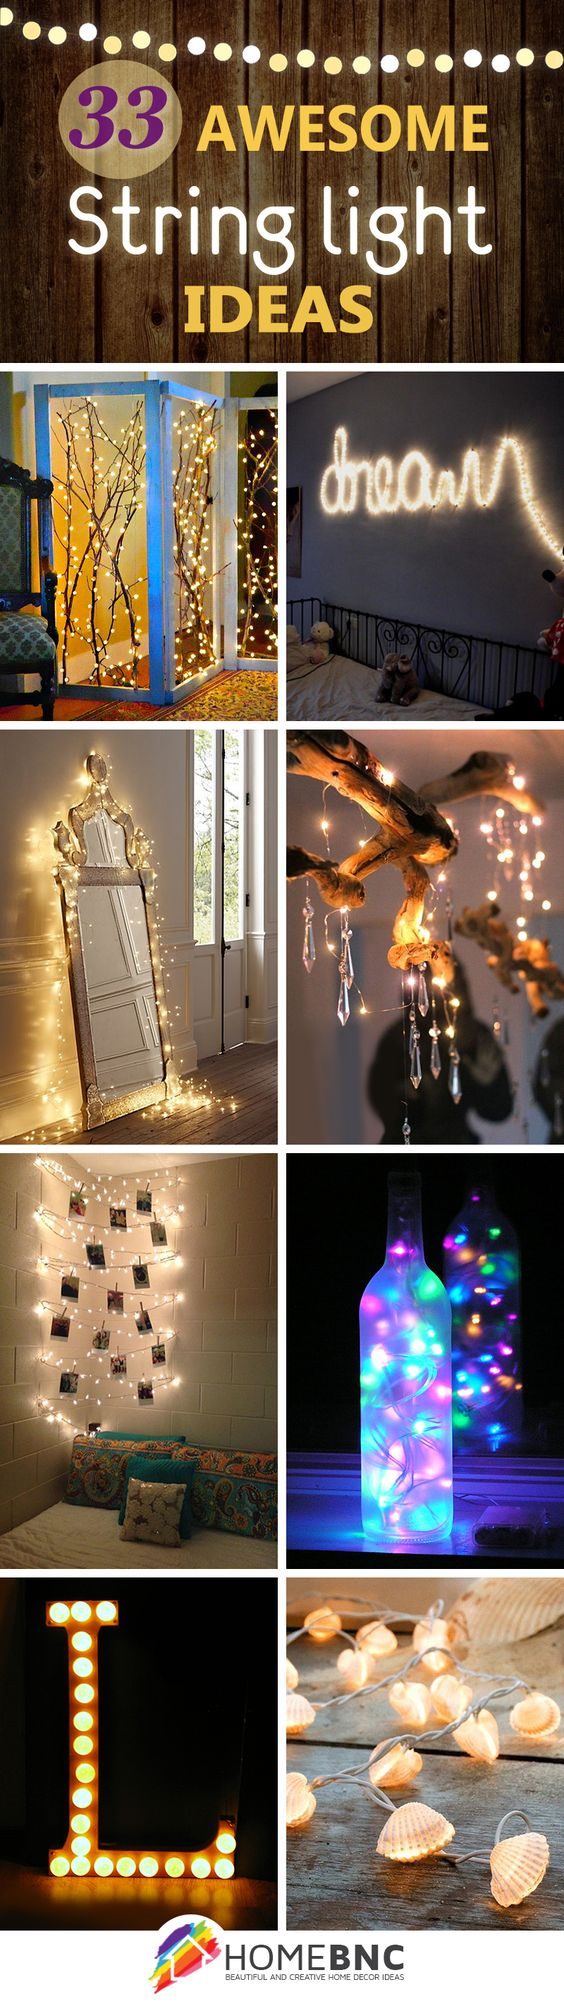 String lights, Light decorations and Decorating ideas on Pinterest